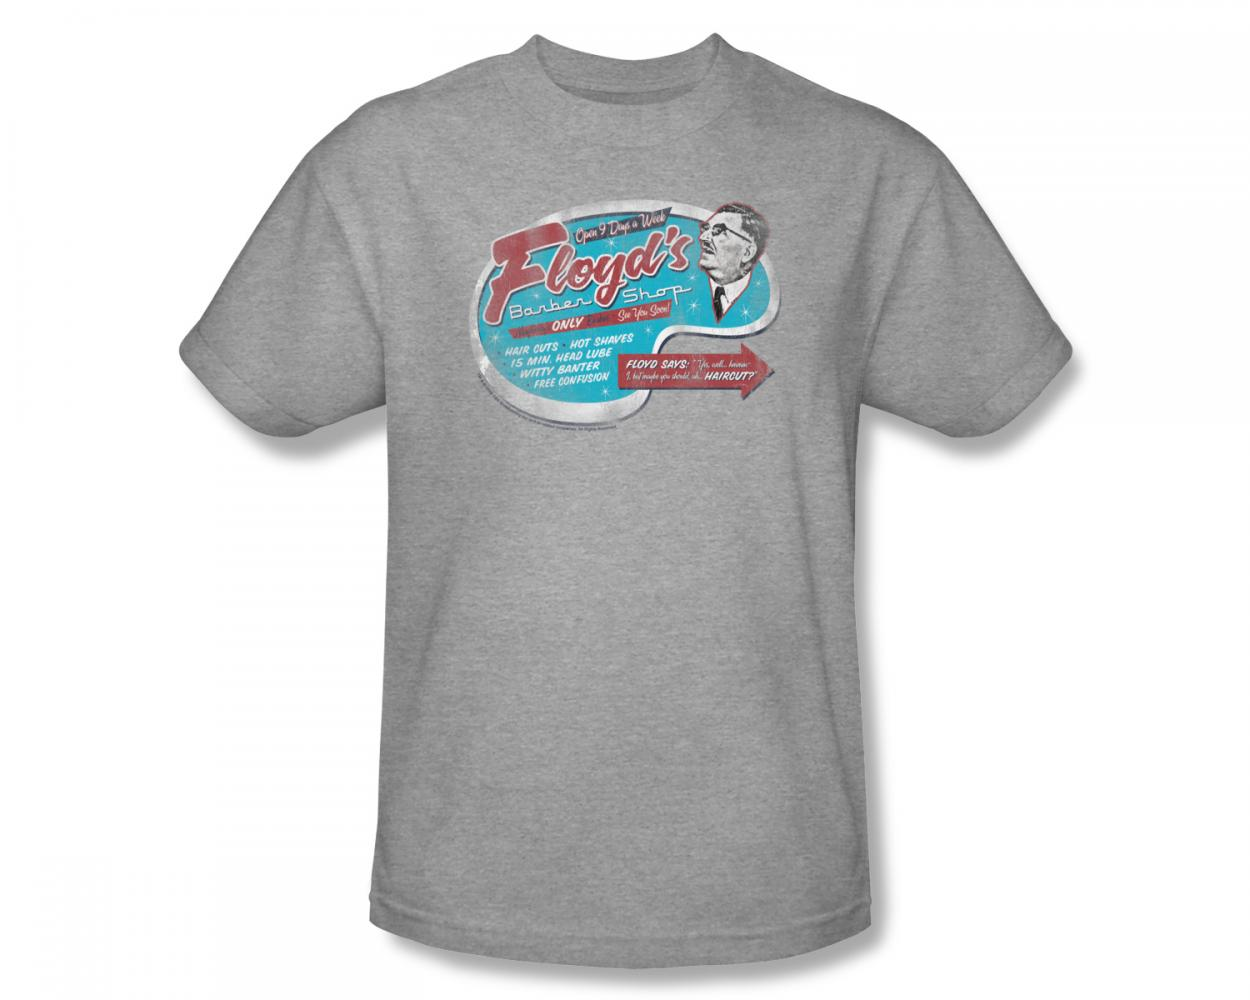 Image of Andy Griffith - Andy Griffith / Floyds Barber Shop Slim Fit Adult T-Shirt In Heather